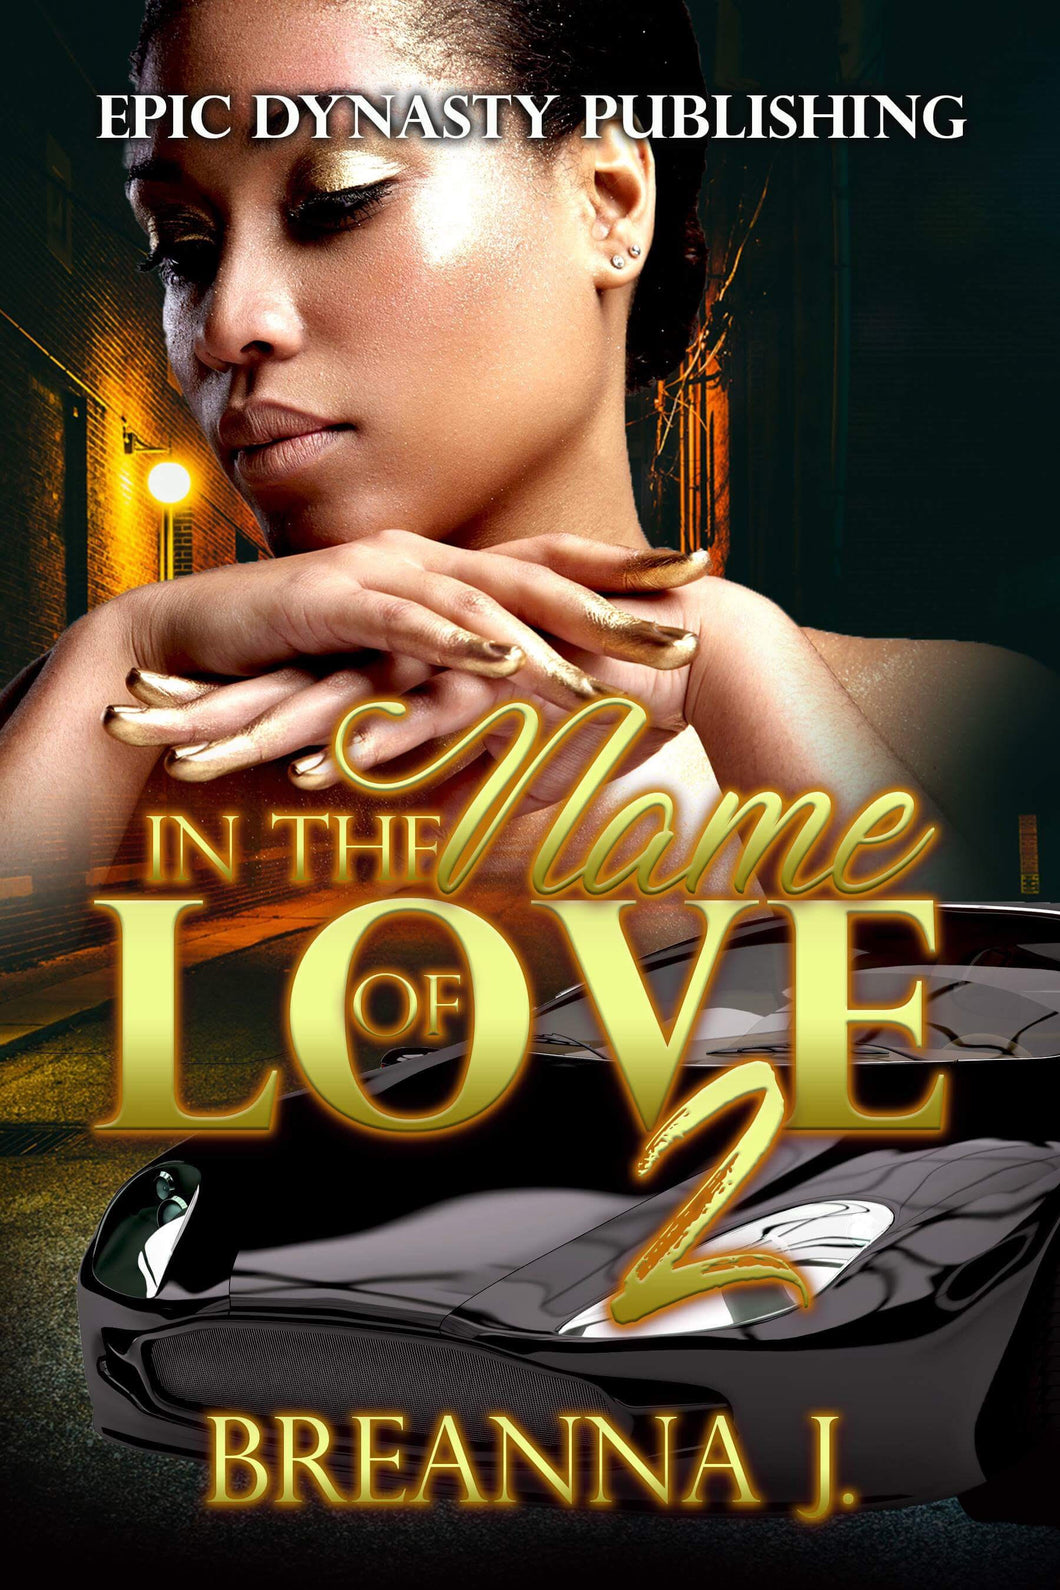 E-book for In the Name of Love 2